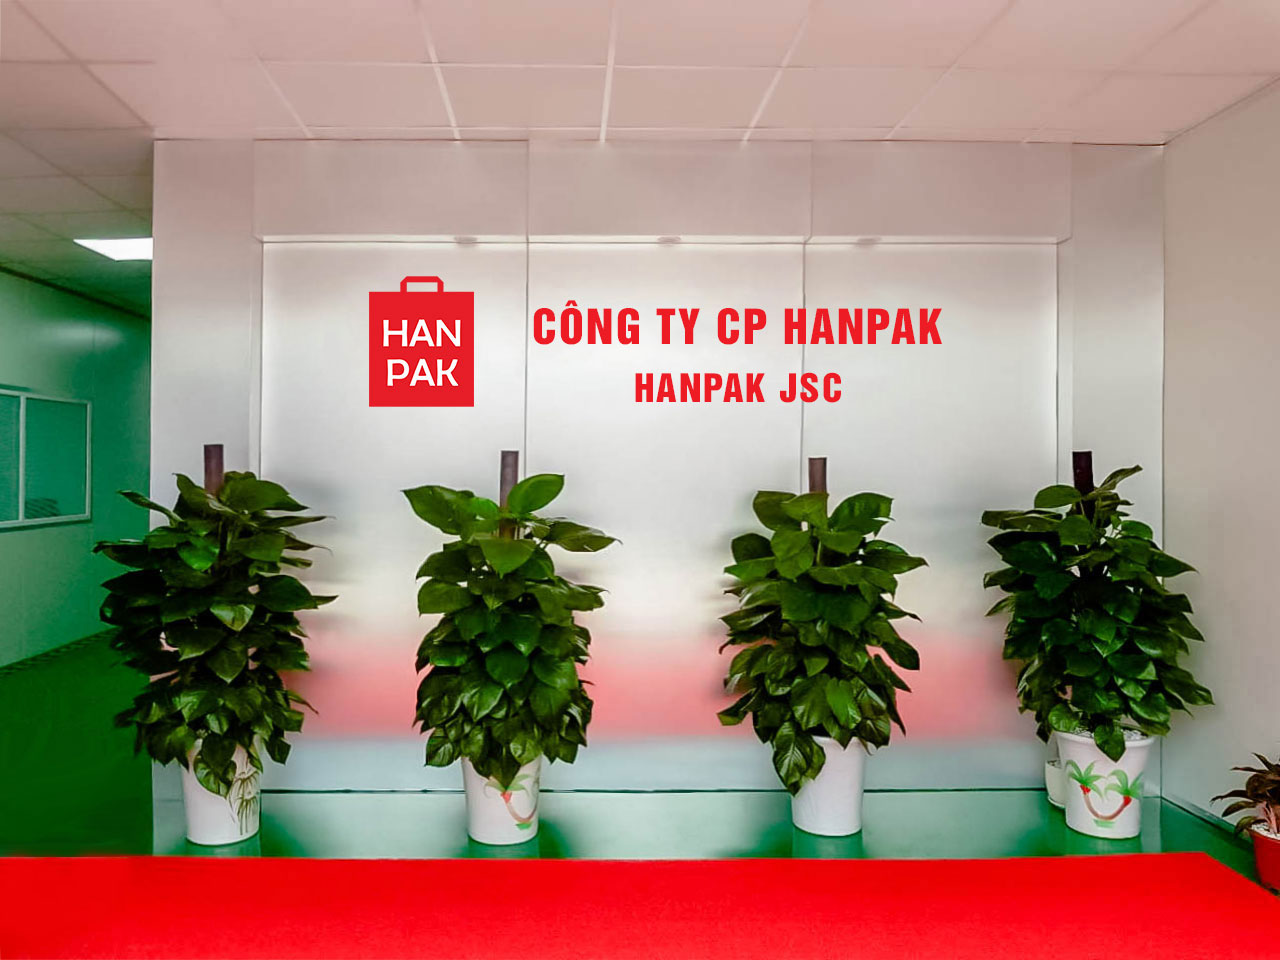 Hanpak Joint Stock Company